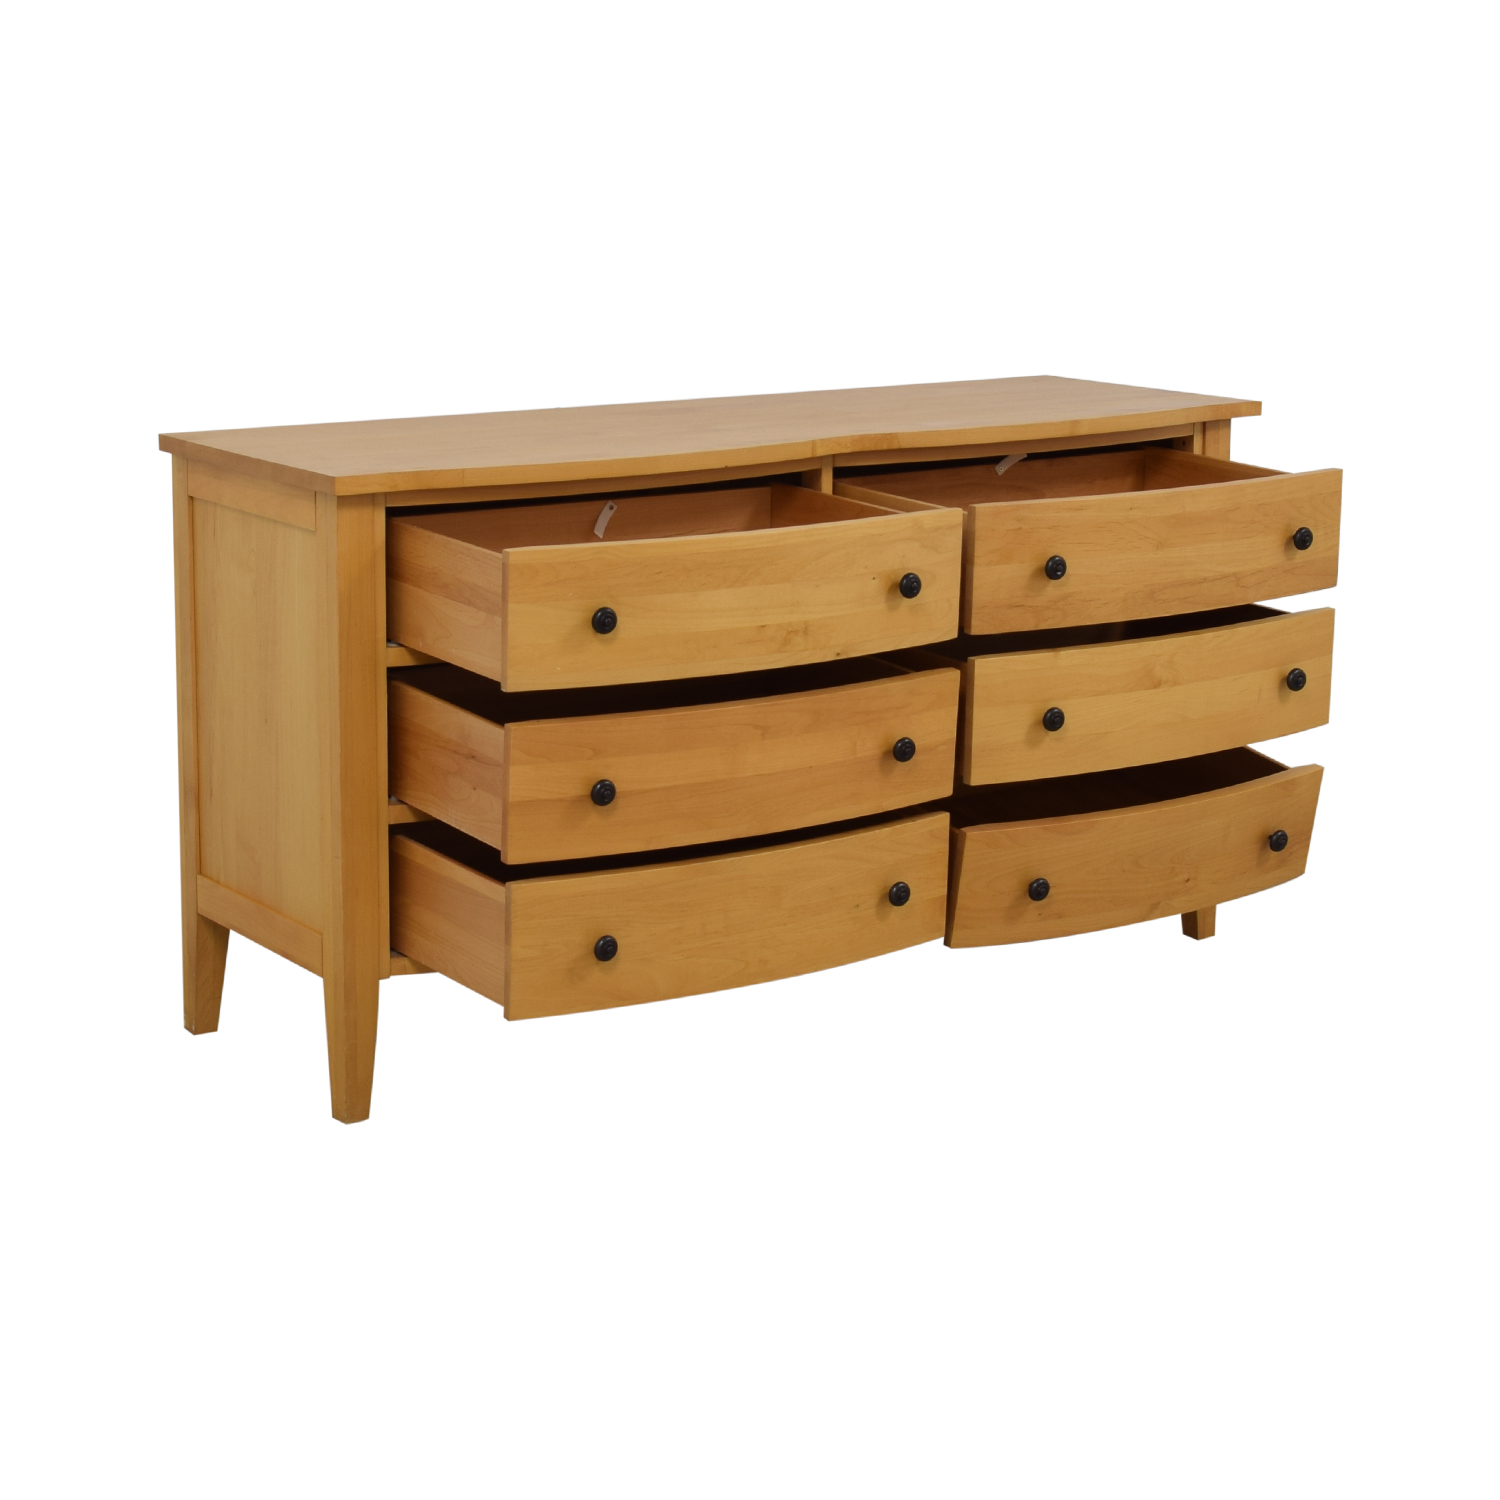 Crate & Barrel Crate & Barrel Chest of Six Drawers dimensions